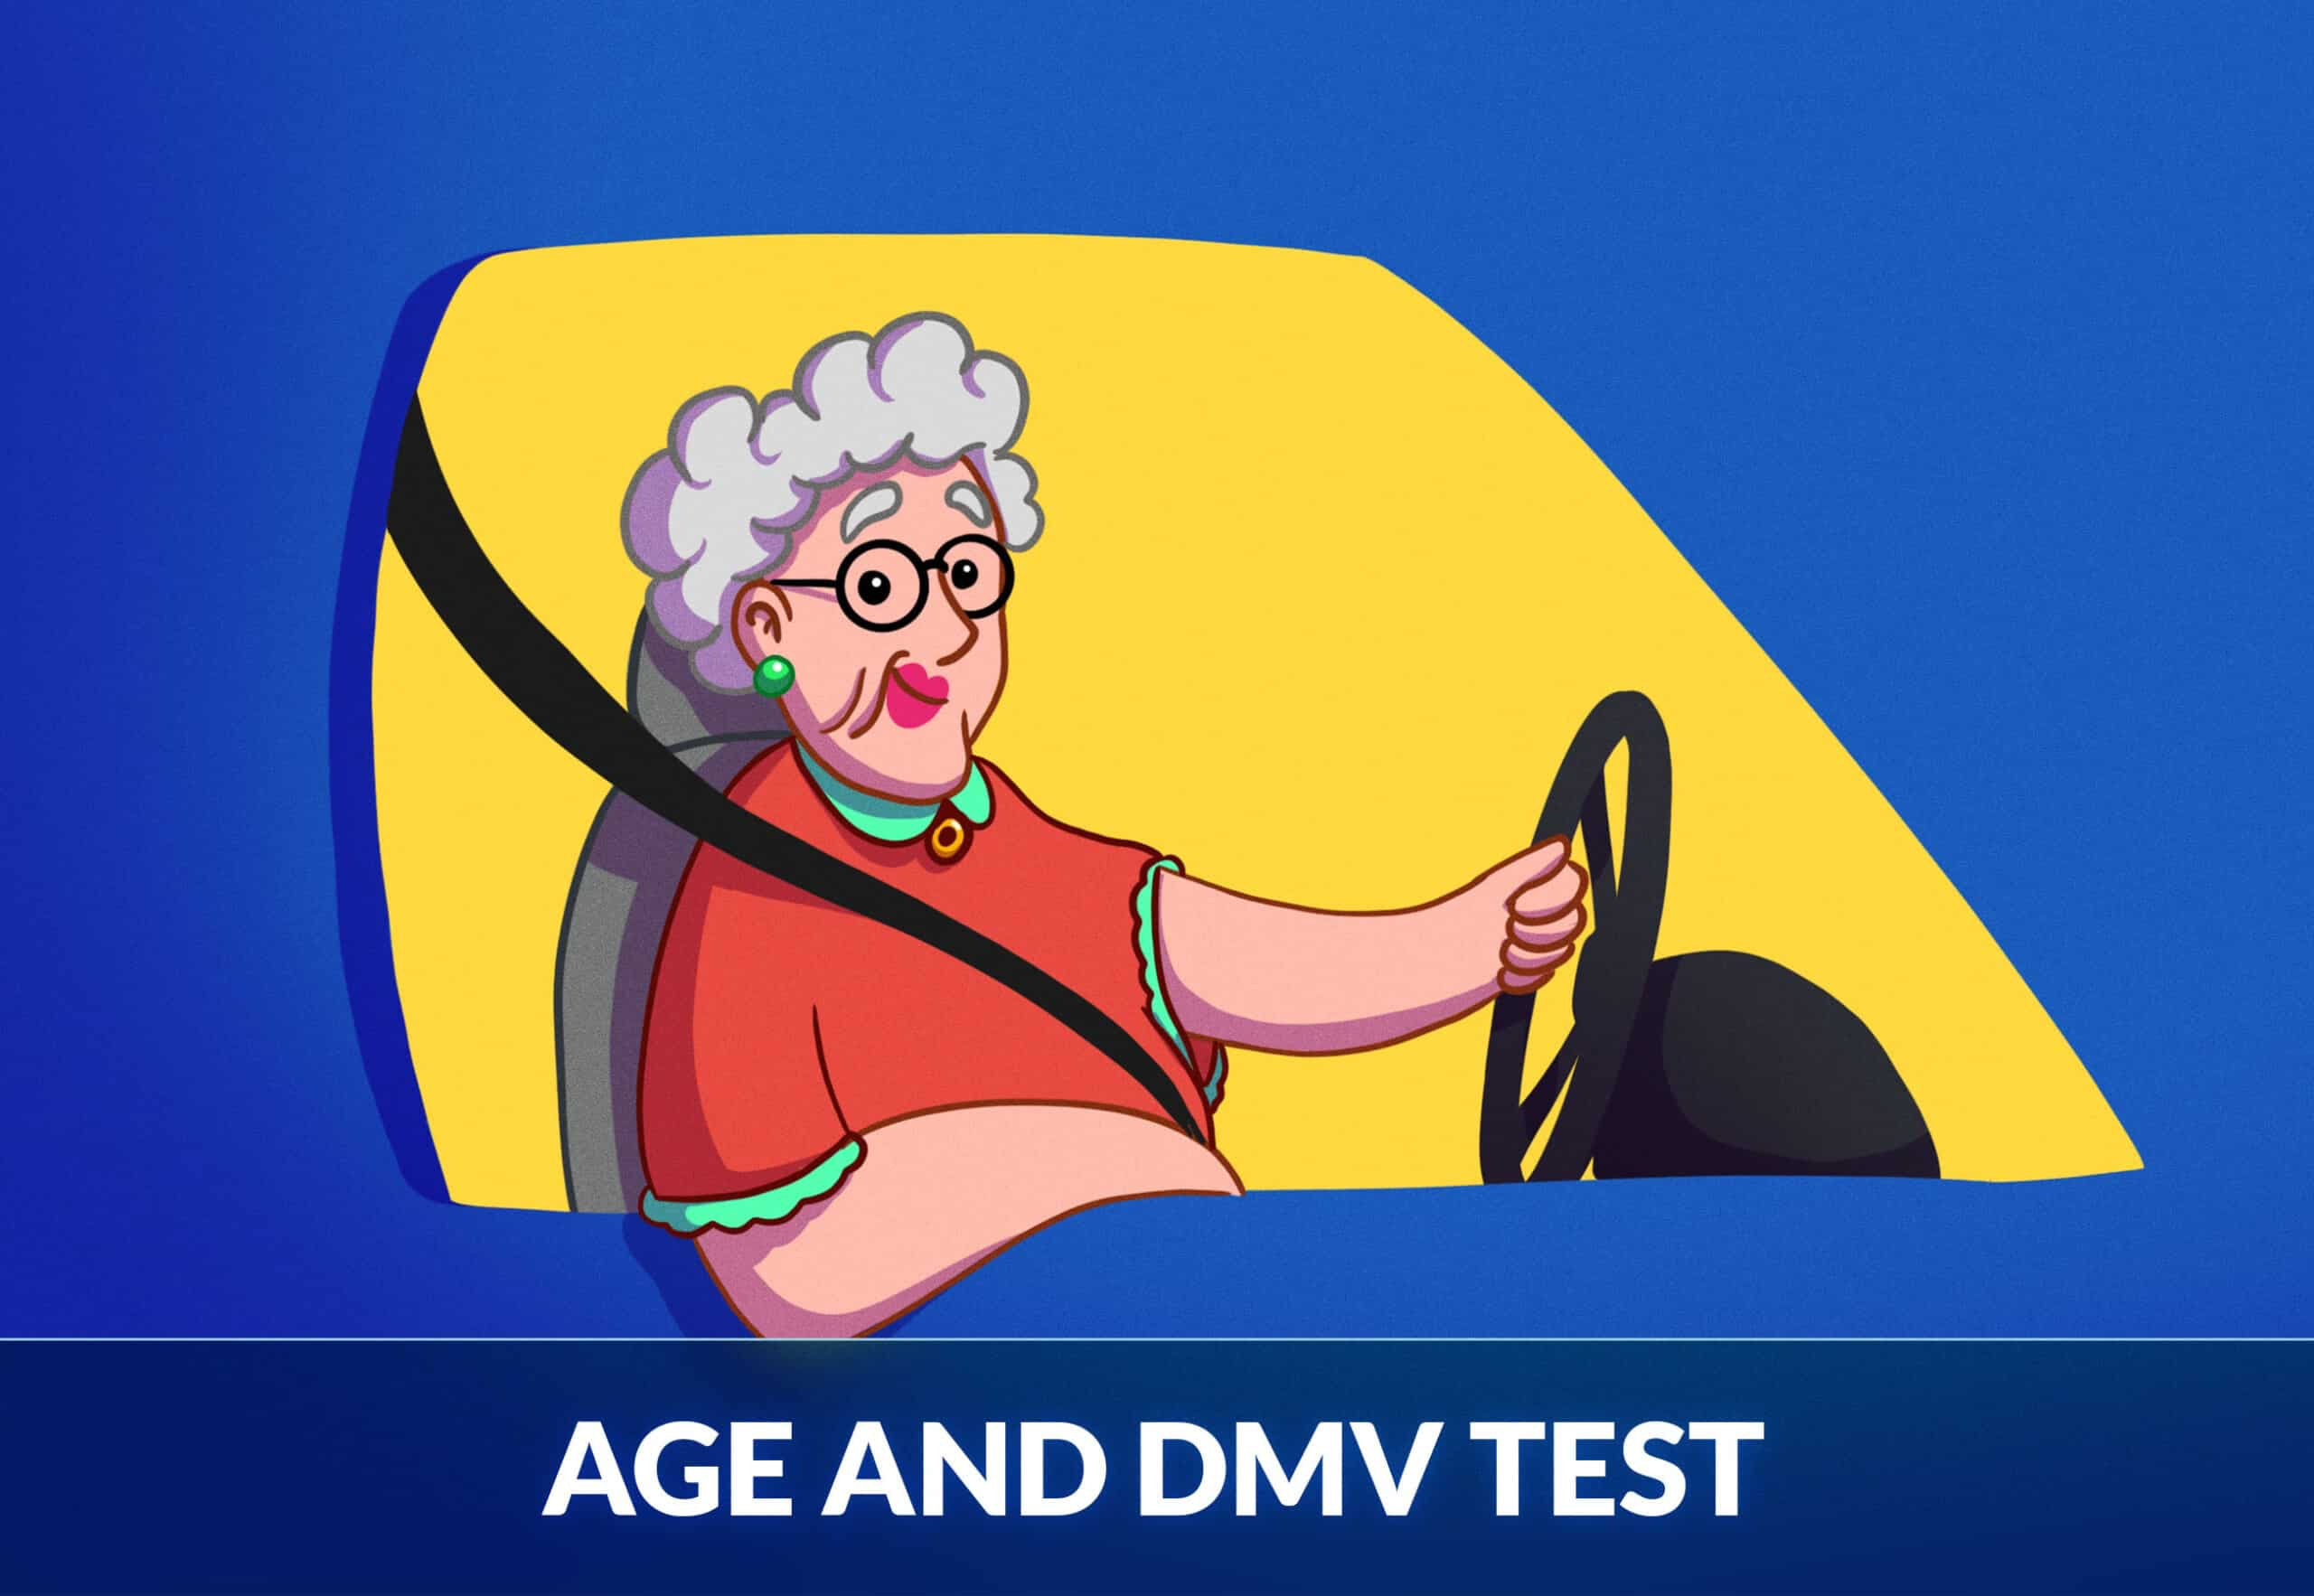 AGE AND DMV TEST